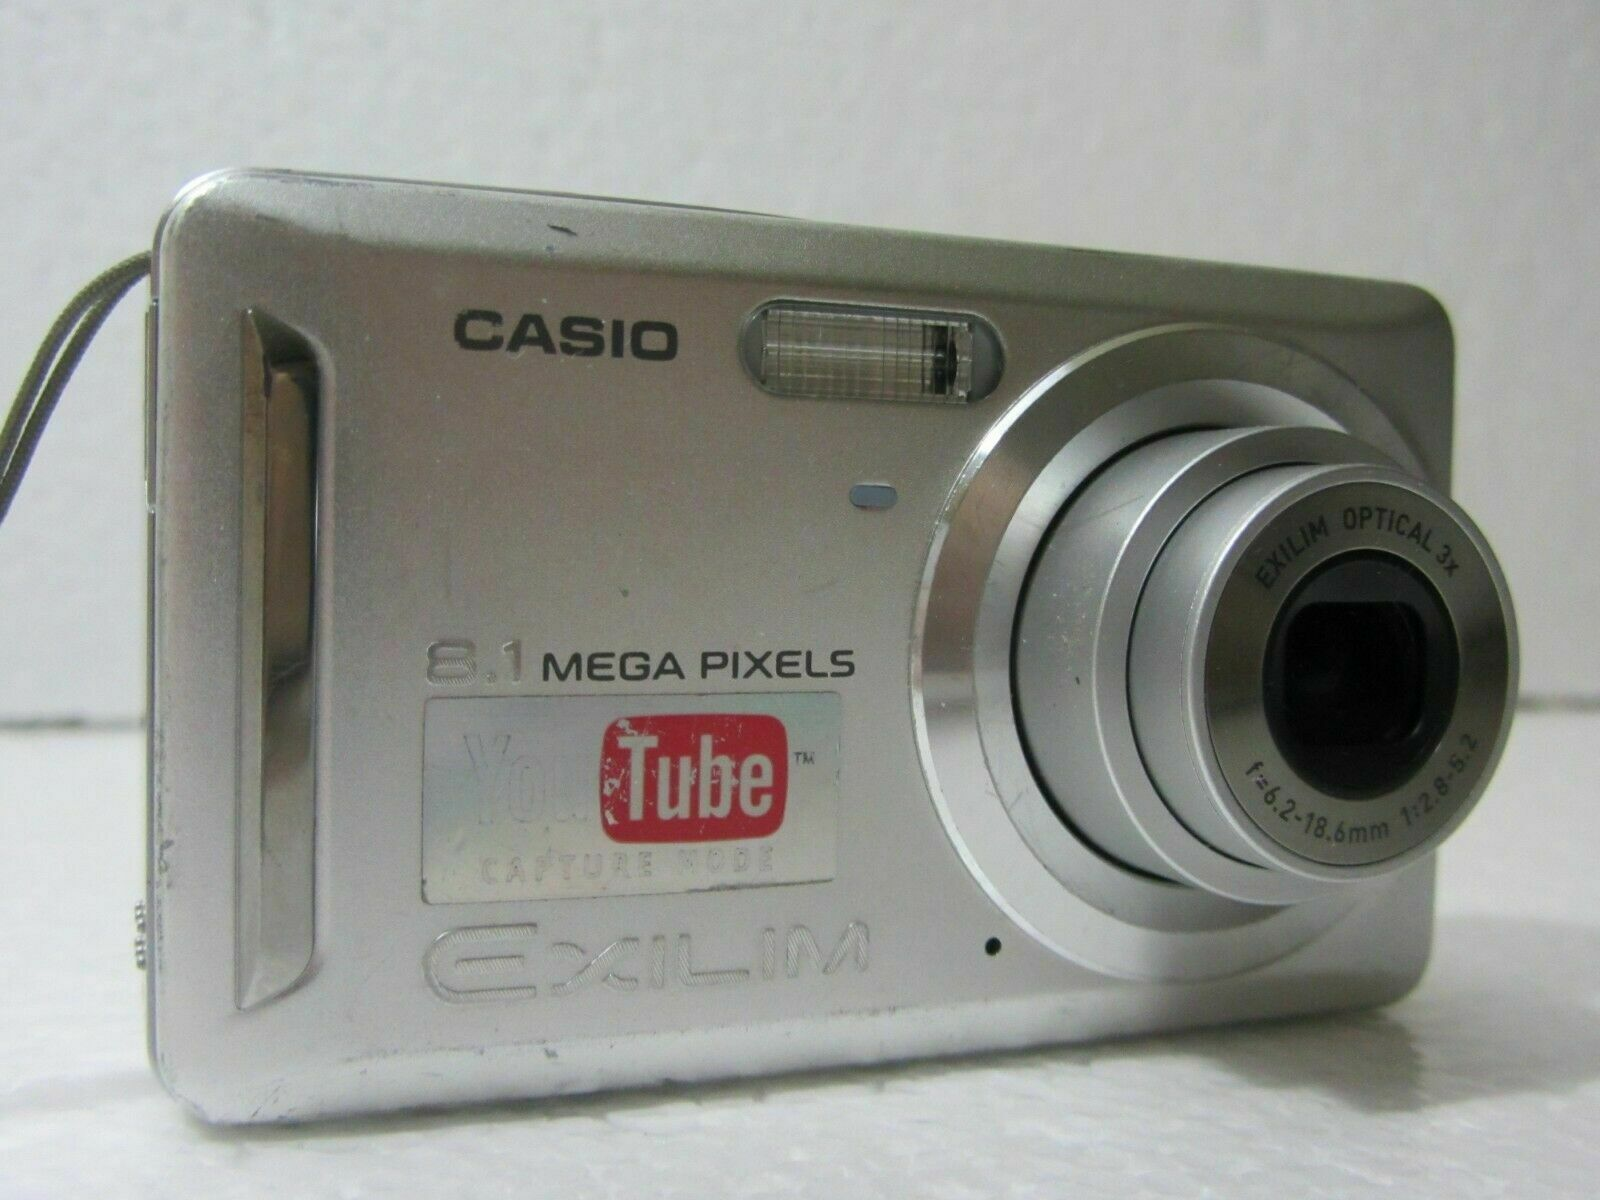 Primary image for Casio EXILIM EX-29 8.1MP Digital Camera - Silver